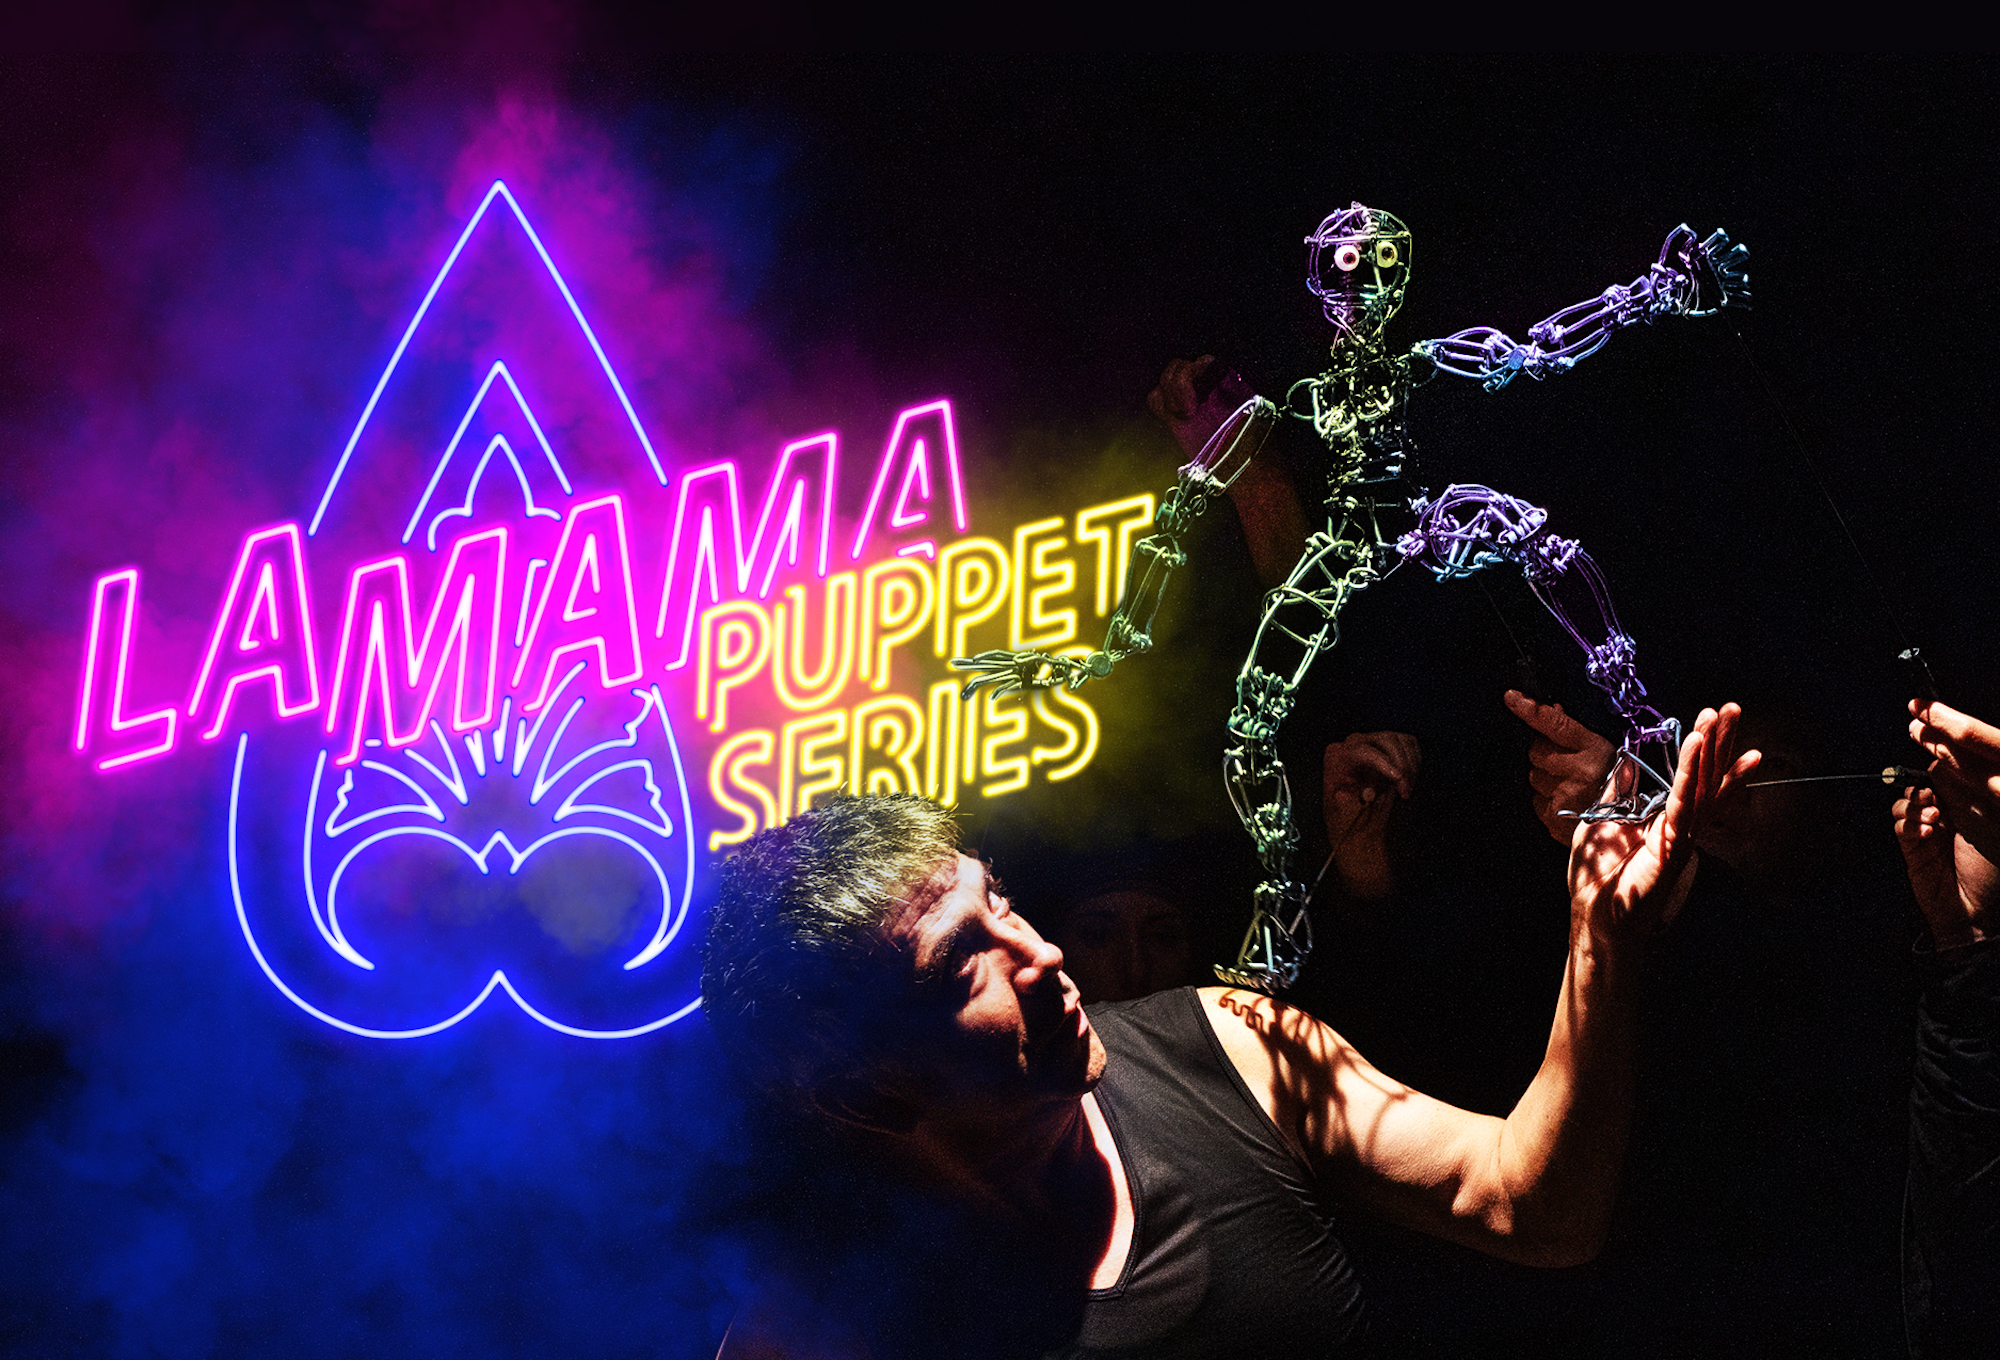 """In the background are neon lights that read """"La MaMa Puppet Series"""" in blue, pink, and yellow. A performer with short hair is wearing a black tank top and holding a metal human figure with eyes. The metal figure's right foot is on the performer's shoulder, and its left foot is on the performer's hand. There are other human hands in the background."""